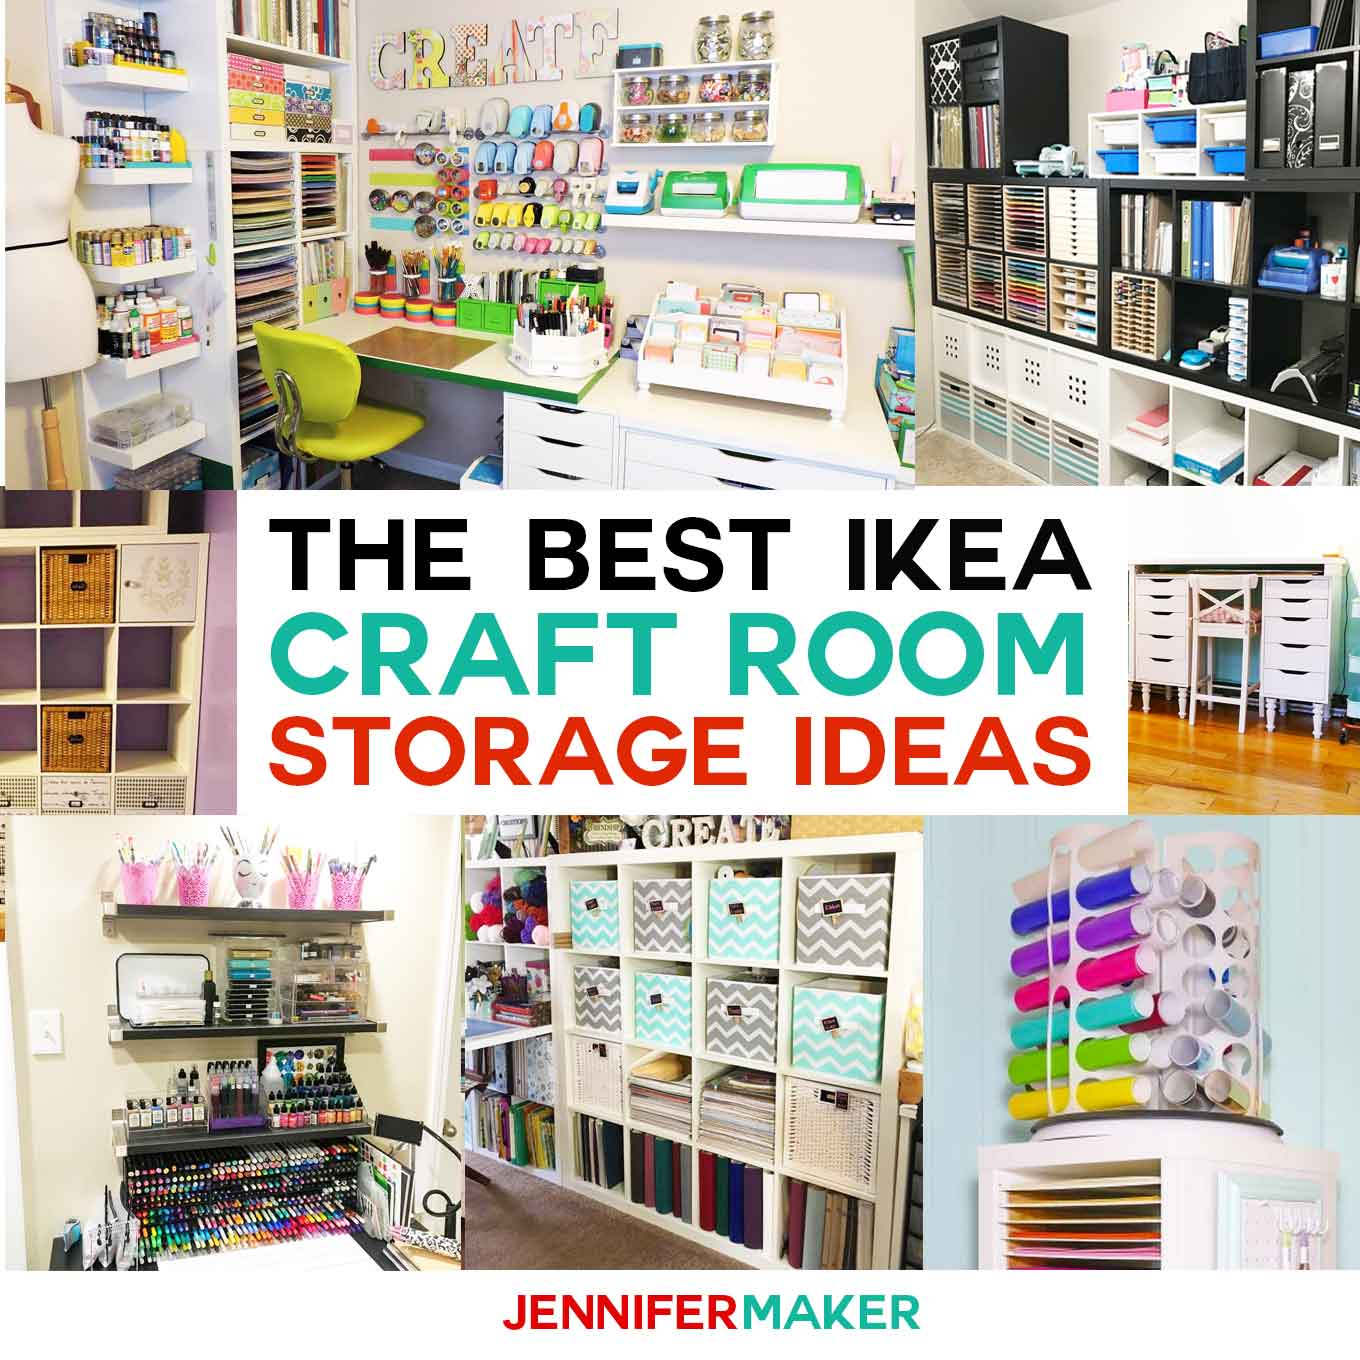 The Best IKEA Craft Room Storage Shelves u0026 Ideas  sc 1 st  Jennifer Maker & The Best IKEA Craft Room Storage Shelves u0026 Ideas - Jennifer Maker